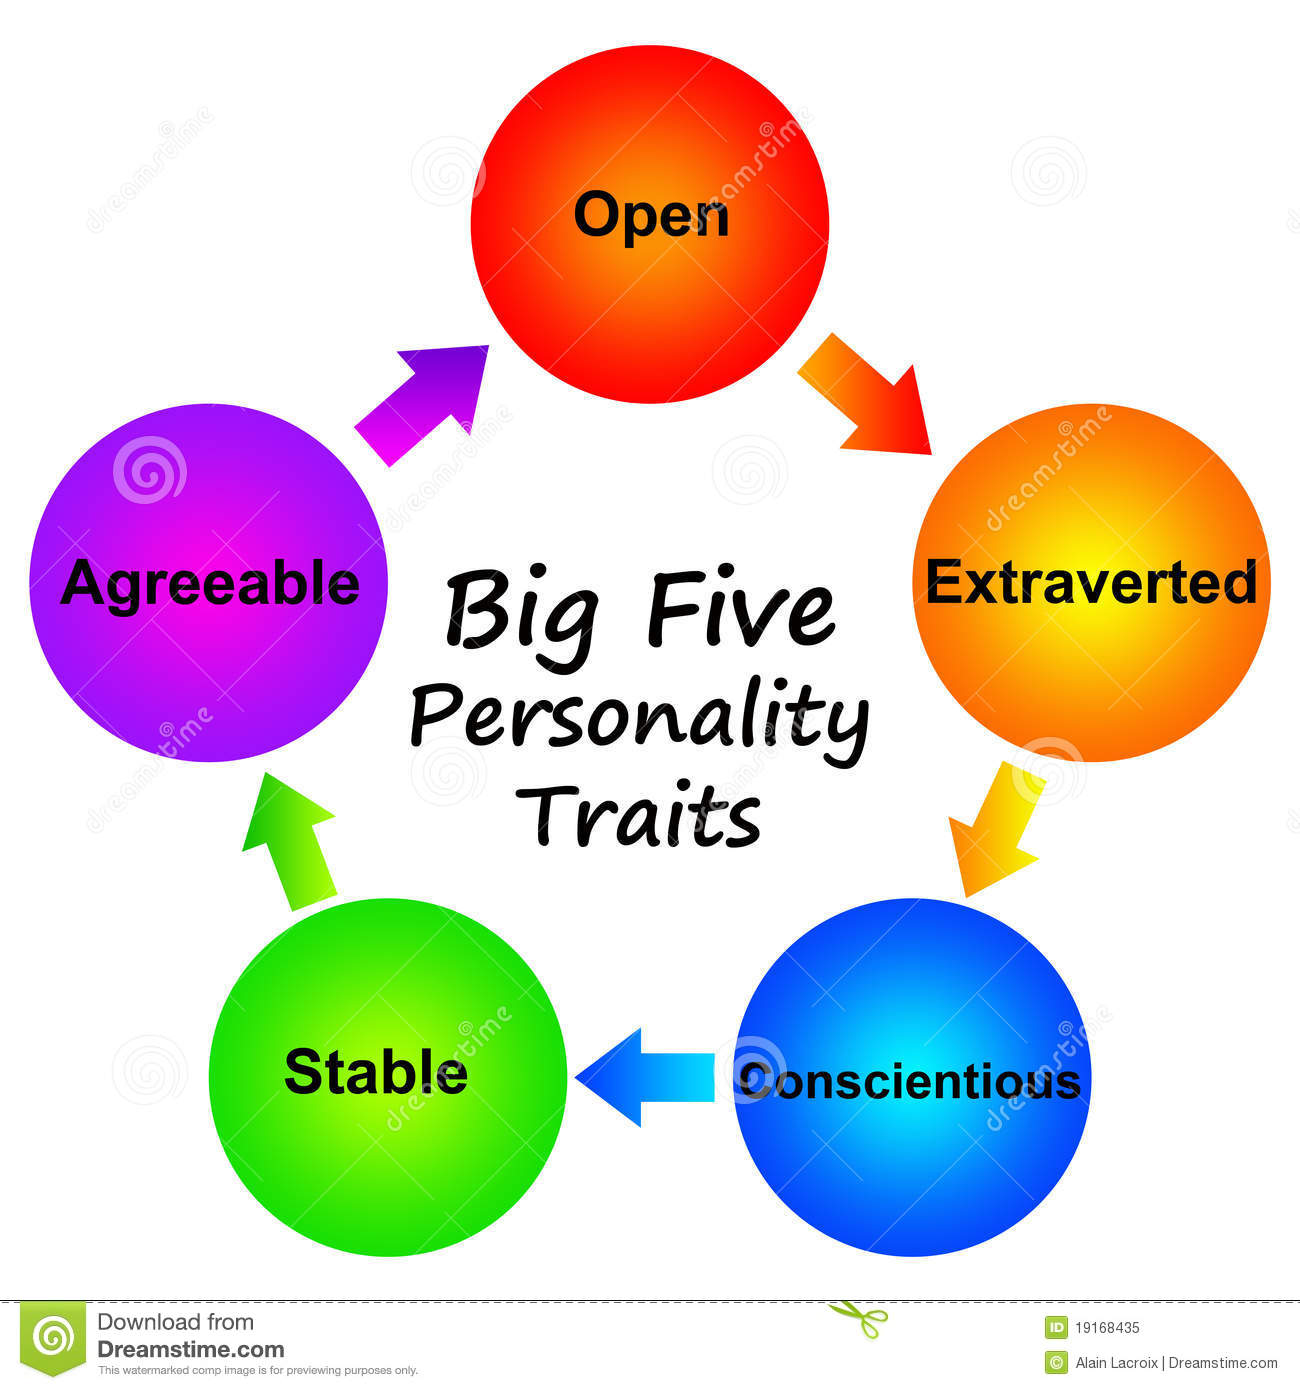 personality traits five persoonlijkheid clipart royalty van agreeableness conscientiousness openness illustration conscientious psychology adventurer important stability del agreeable ocean students